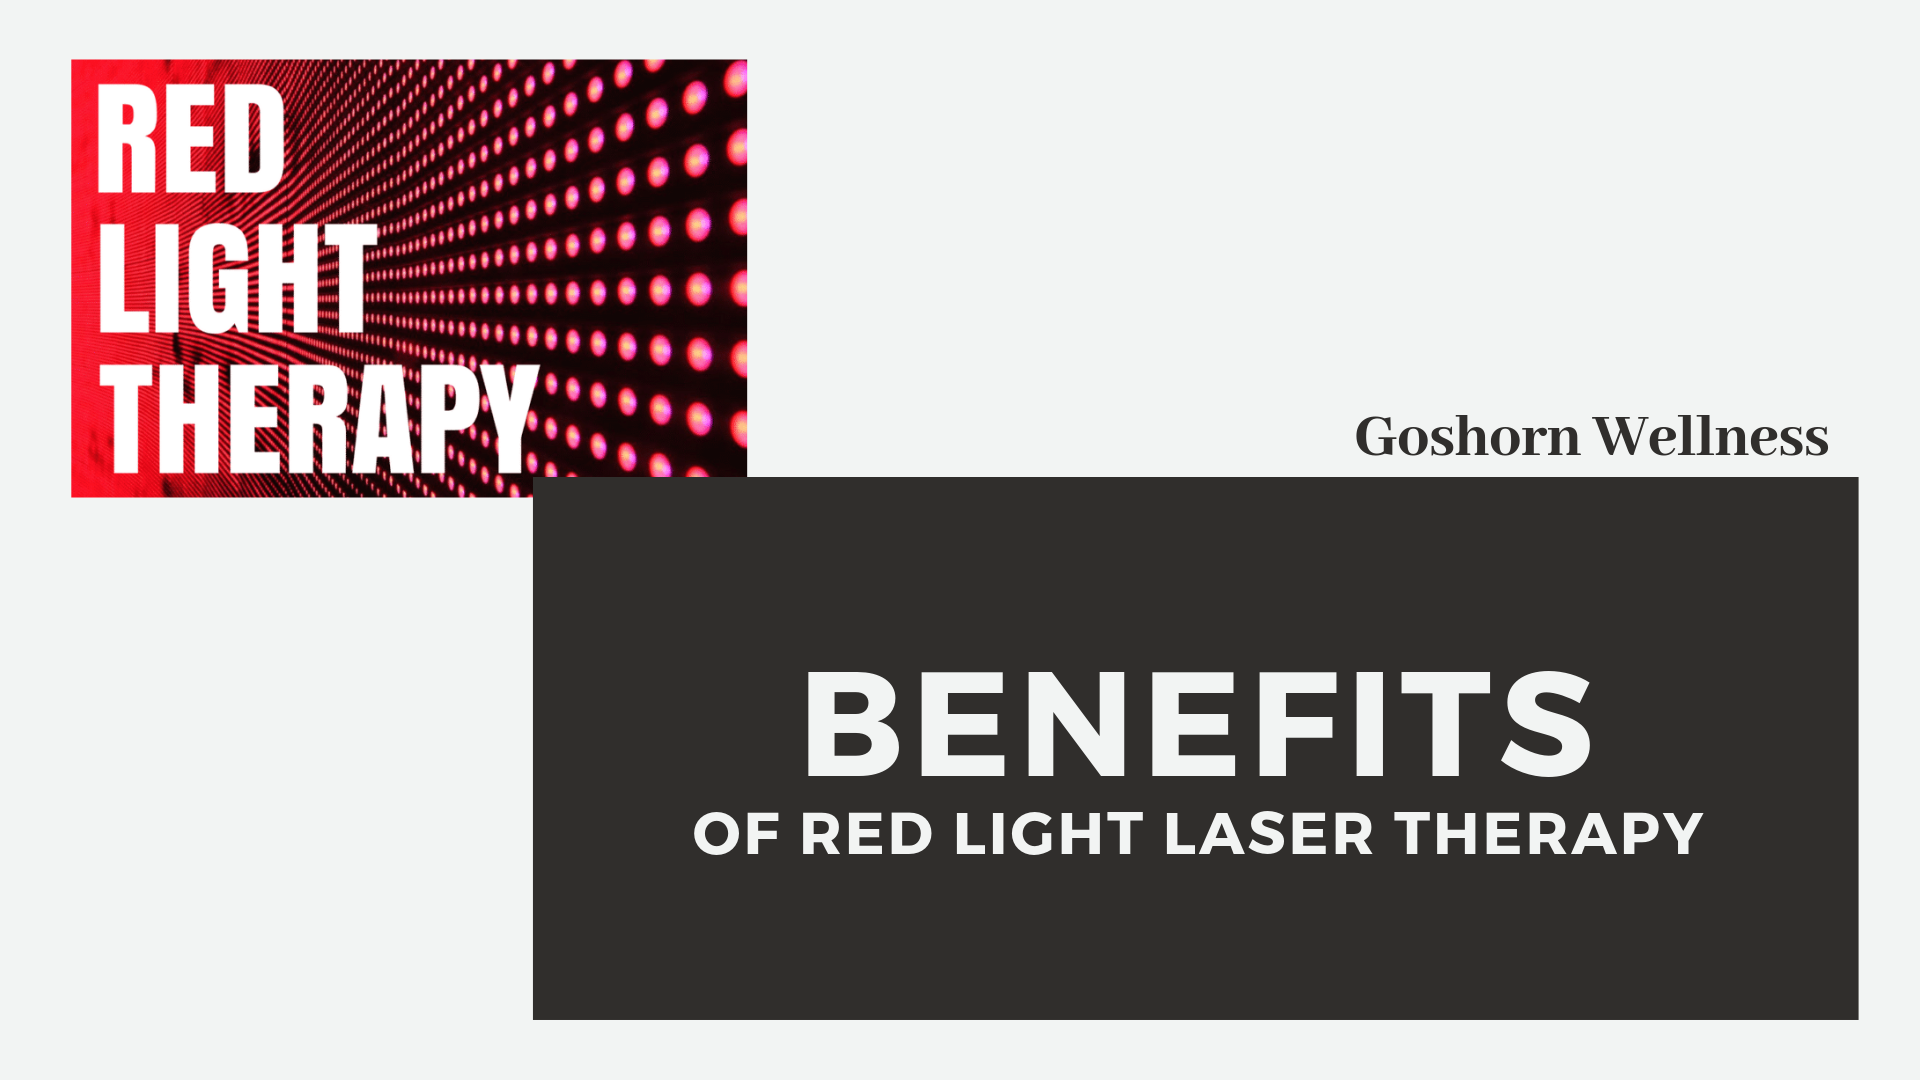 Benefits of Red Light Laser Therapy